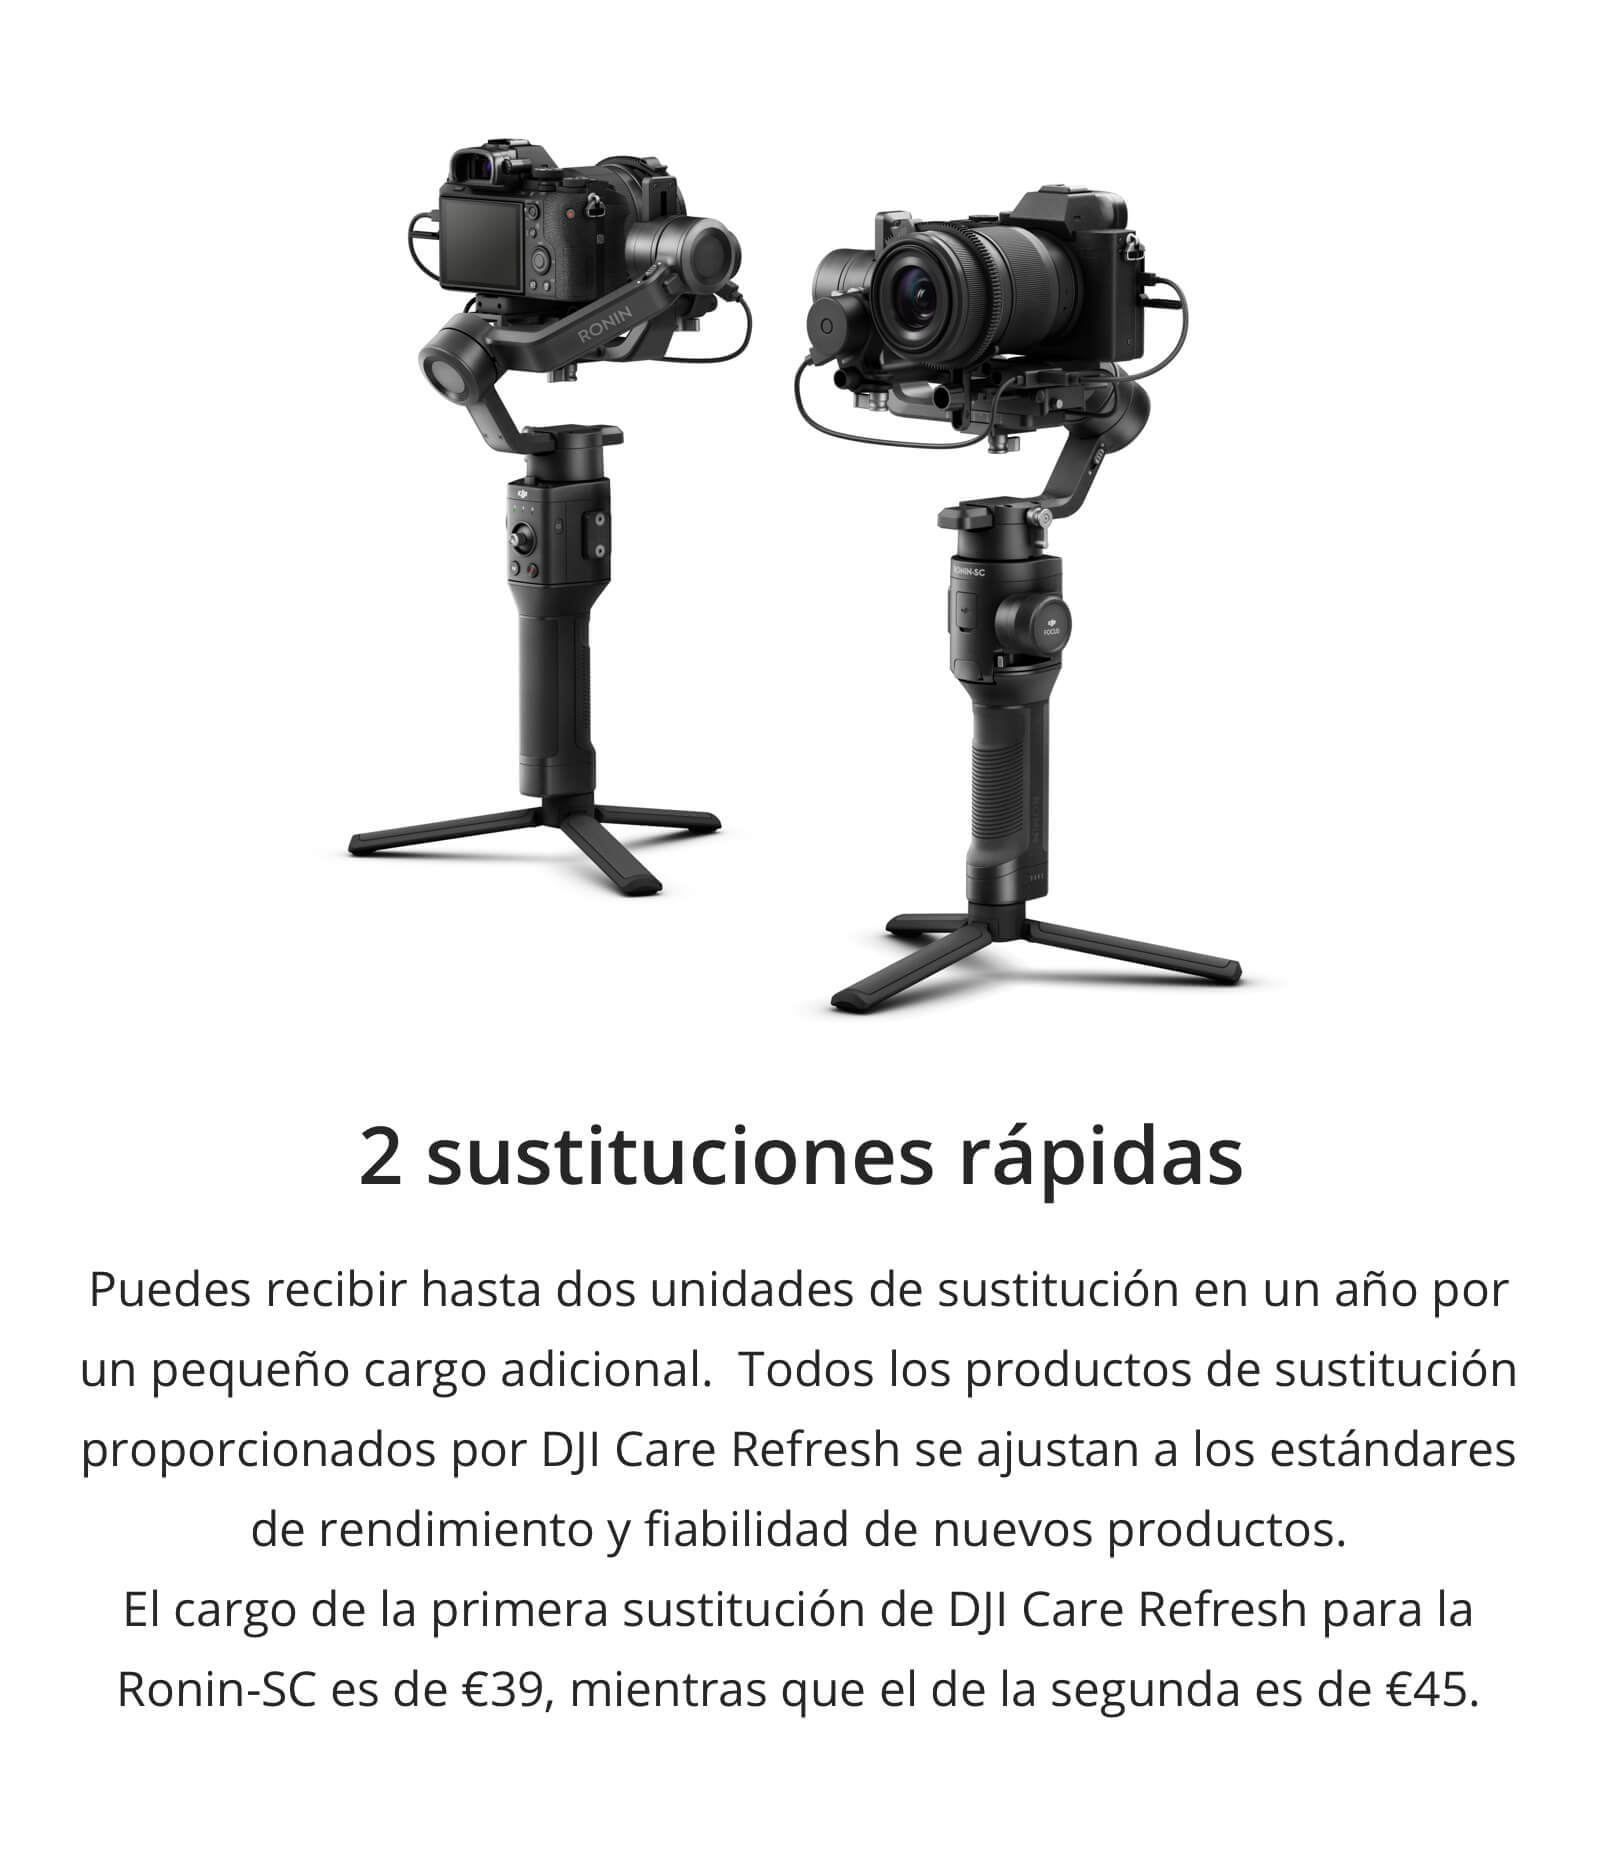 DJI_Care_refresh_Ronin-SC_stockrc1